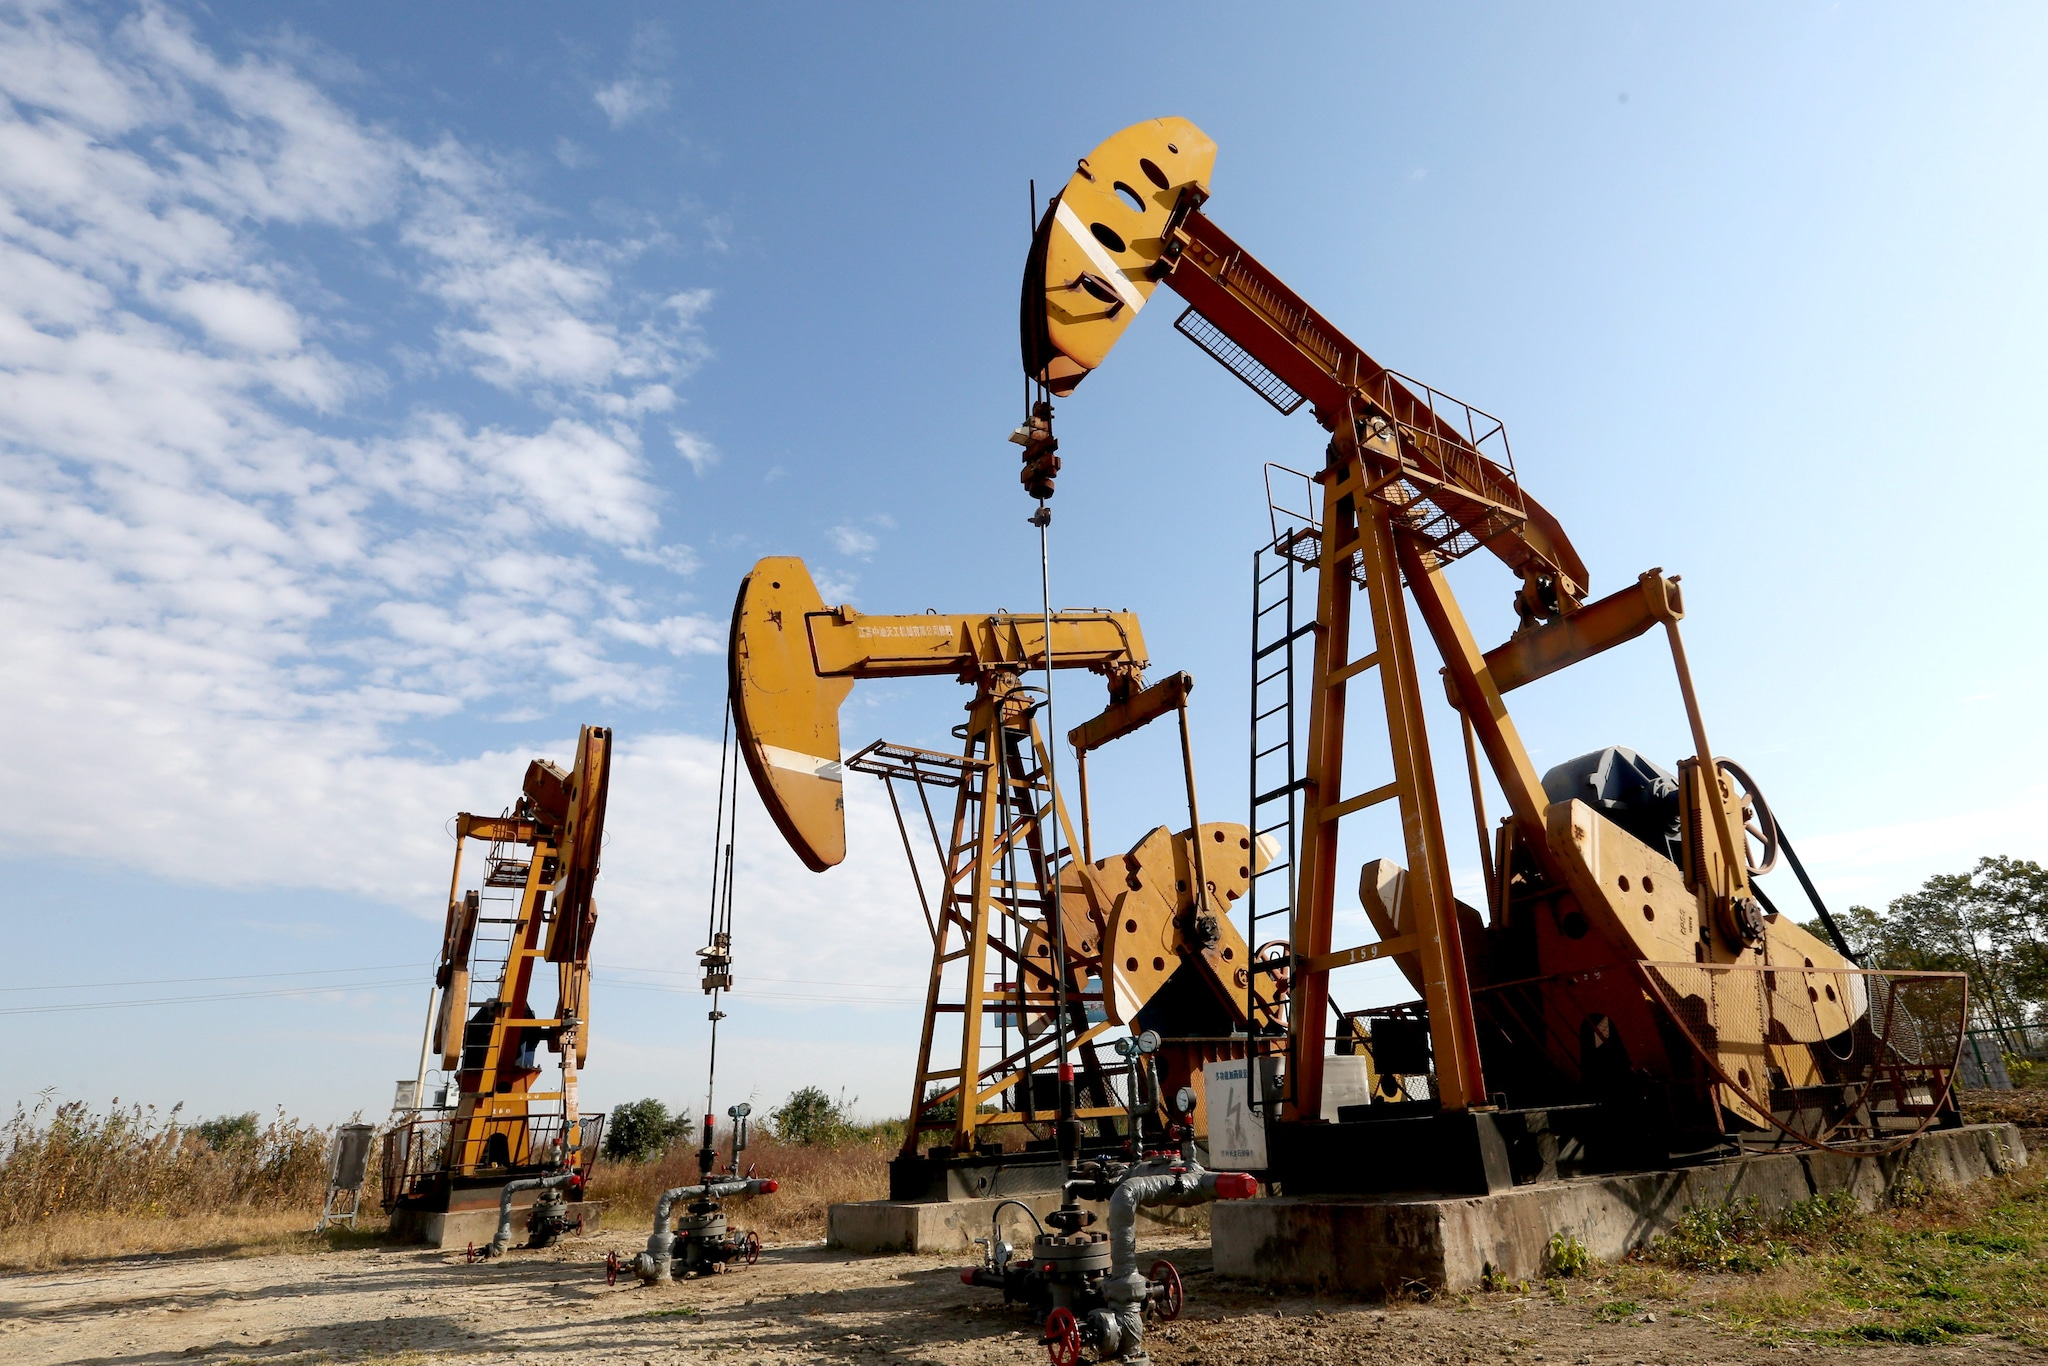 4. Crude Oil: US West Texas Intermediate (WTI) crude futures were at $53.76 per barrel at 2338 GMT, up 10 cents, or 0.2 percent, from their last settlement. They closed down 1.7 percent on Tuesday. International Brent crude oil futures had yet to trade, after closing down 0.8 percent in the previous session.  (Image: Reuters/Caption Credits: Reuters)